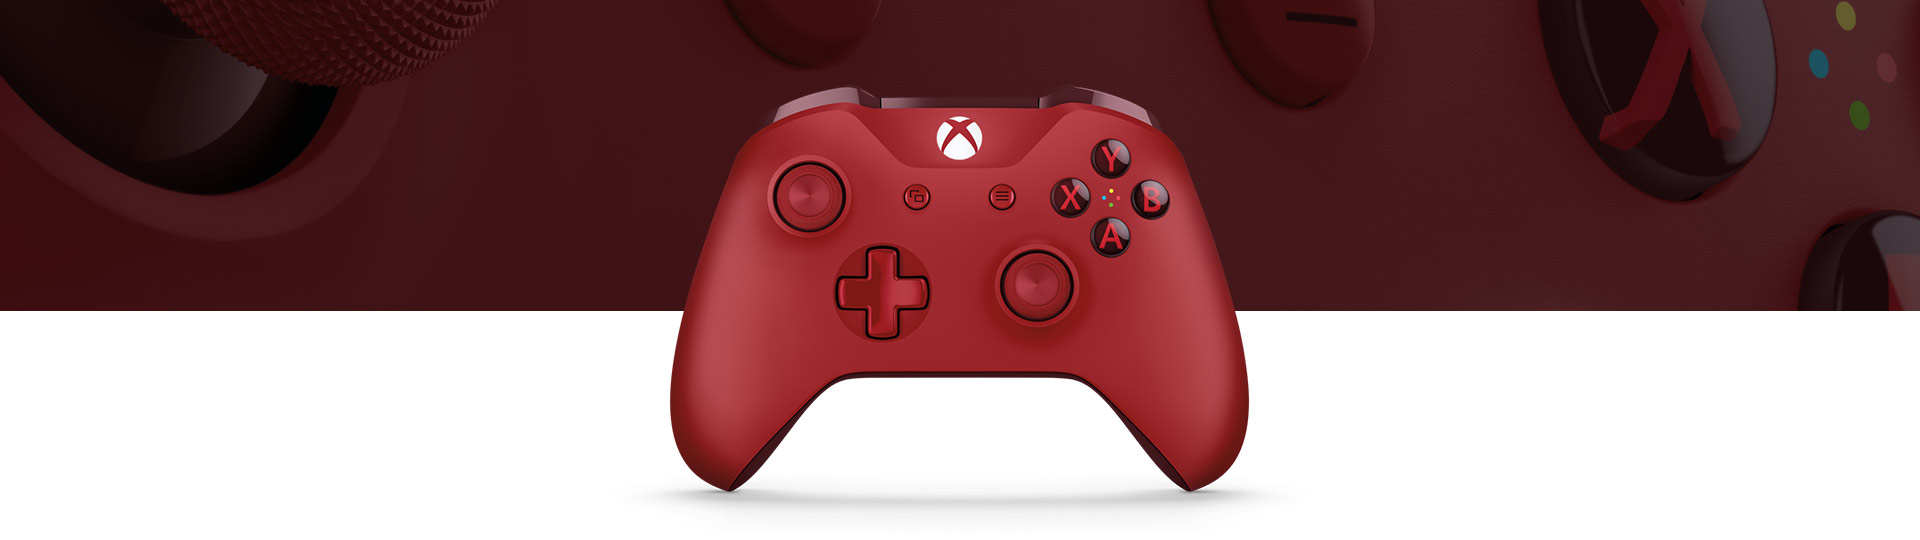 Manette sans fil Xbox One (rouge)